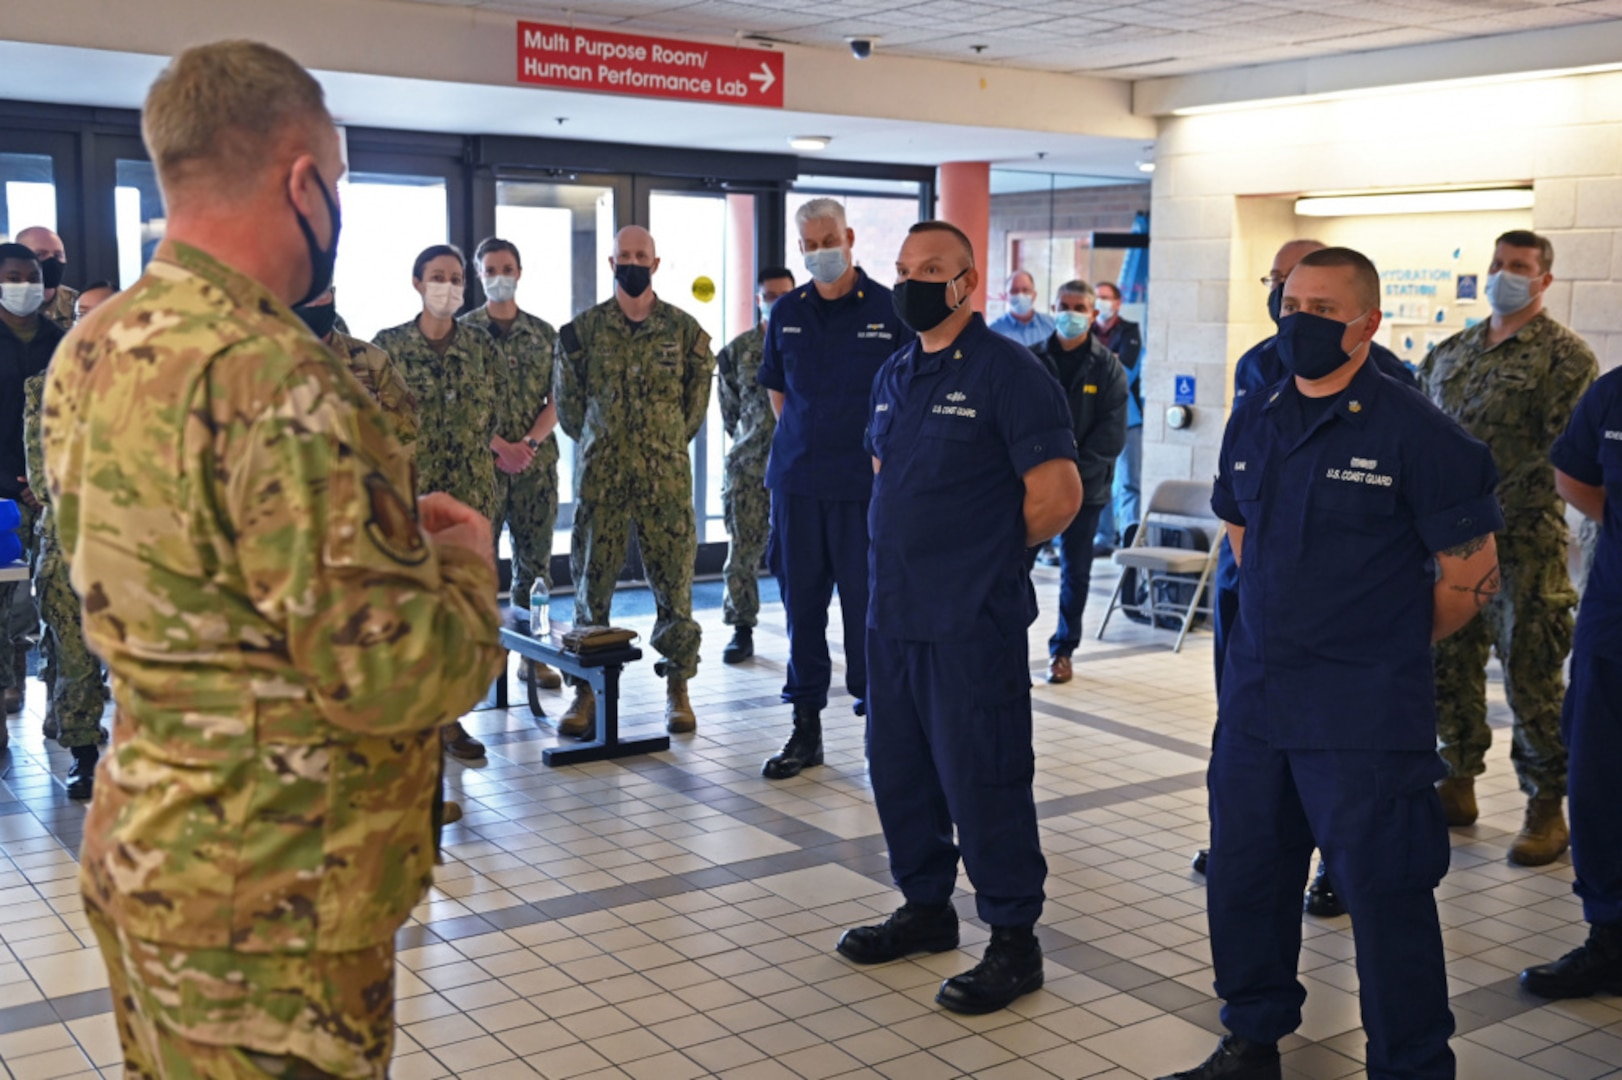 U.S. Coast Guard Reserve members from Massachusetts and New York deployed to the Queens Covid-19 vaccine distribution site were recognized by U.S. Air Force Assistant Adjutant General Maj. Gen. Timothy LaBarge for their efforts on May 6, 2021.